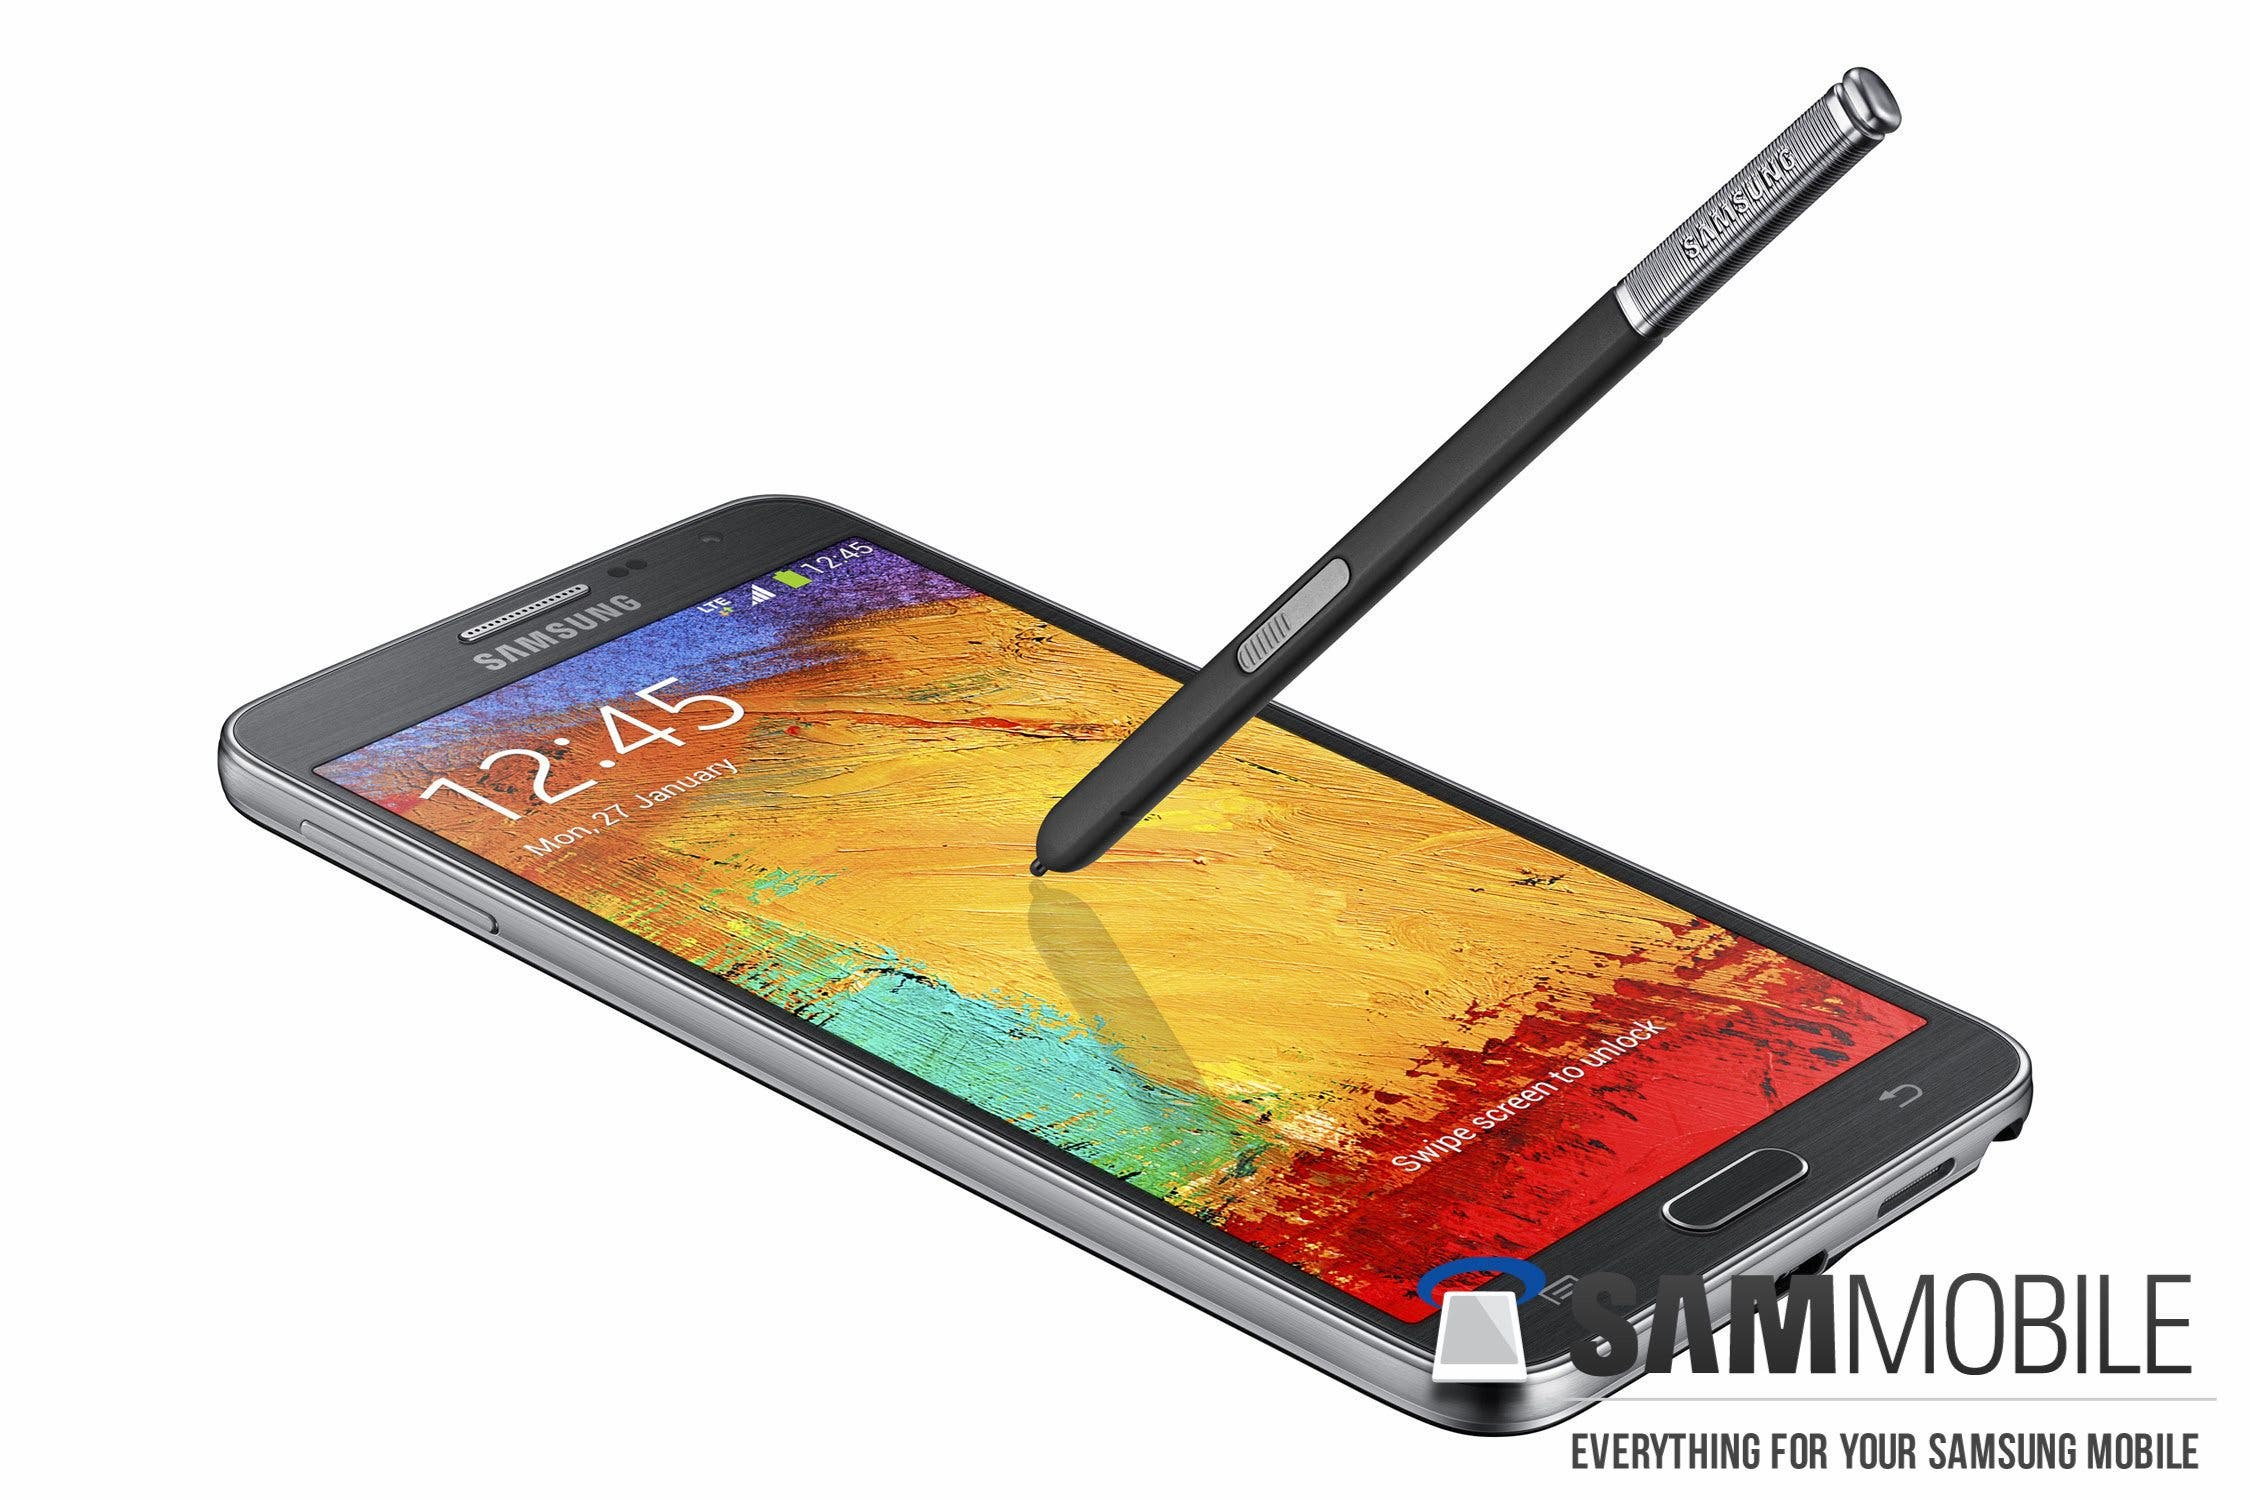 Samsung-GALAXY-Note-3-NEO 1